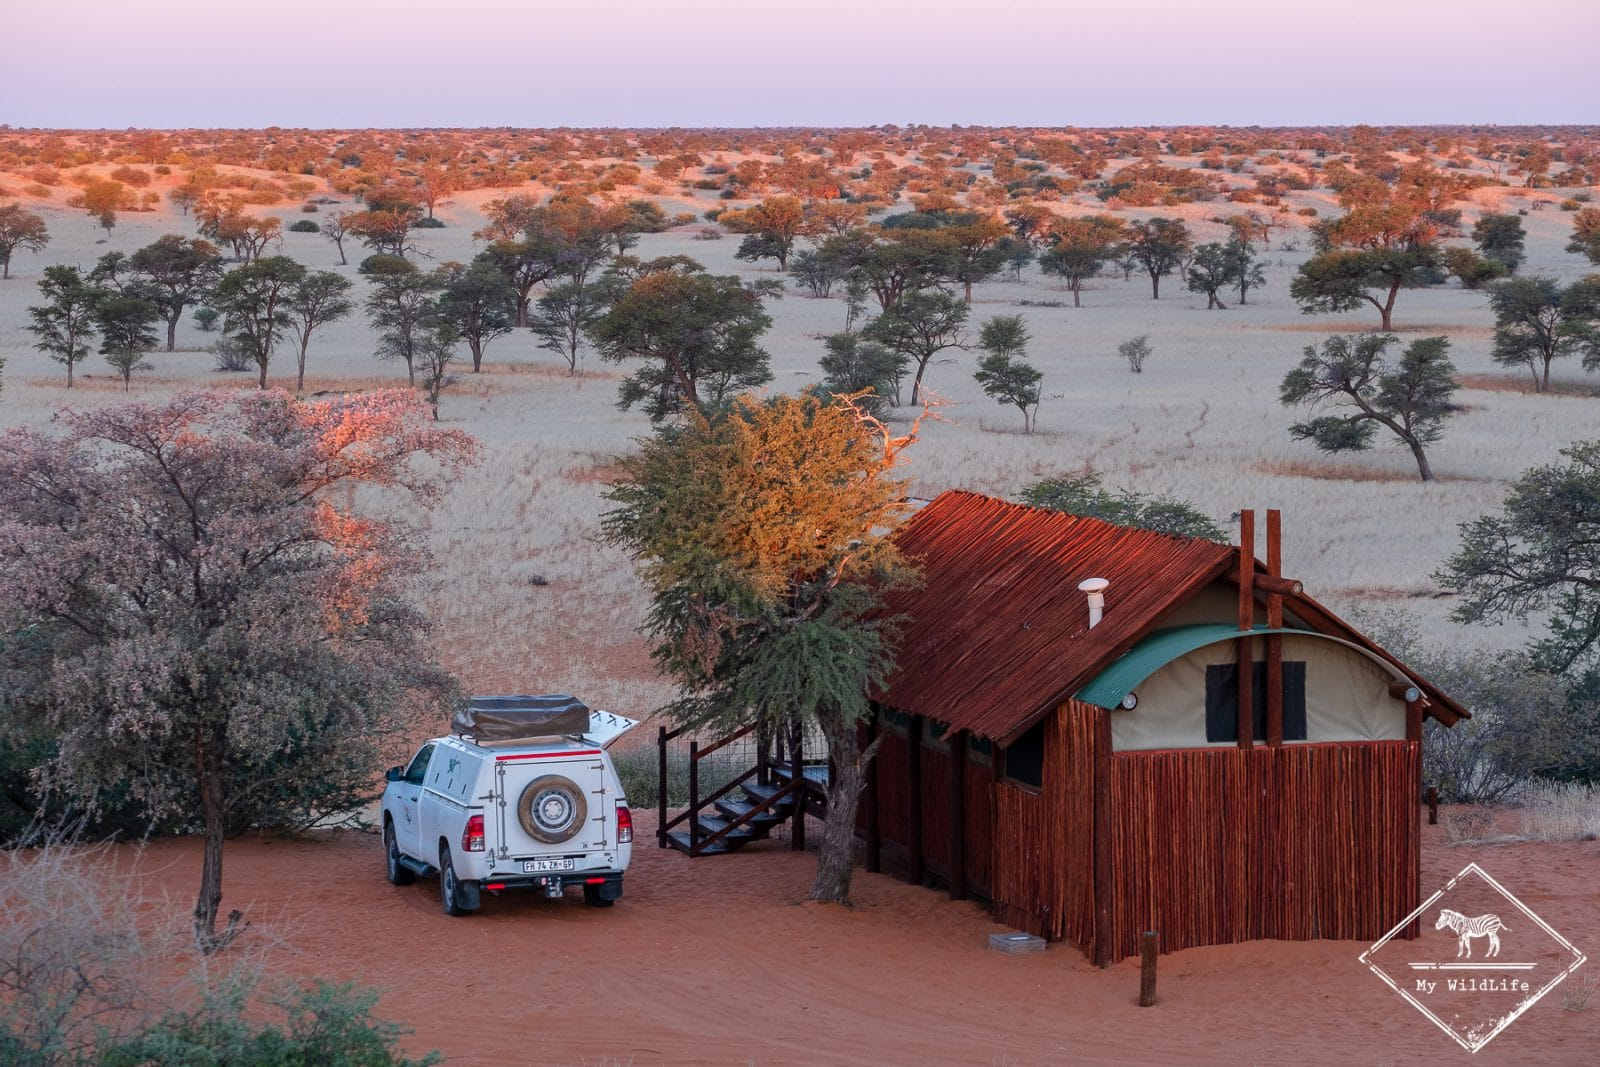 Gharagab wilderness camp, parc national Kgalagadi